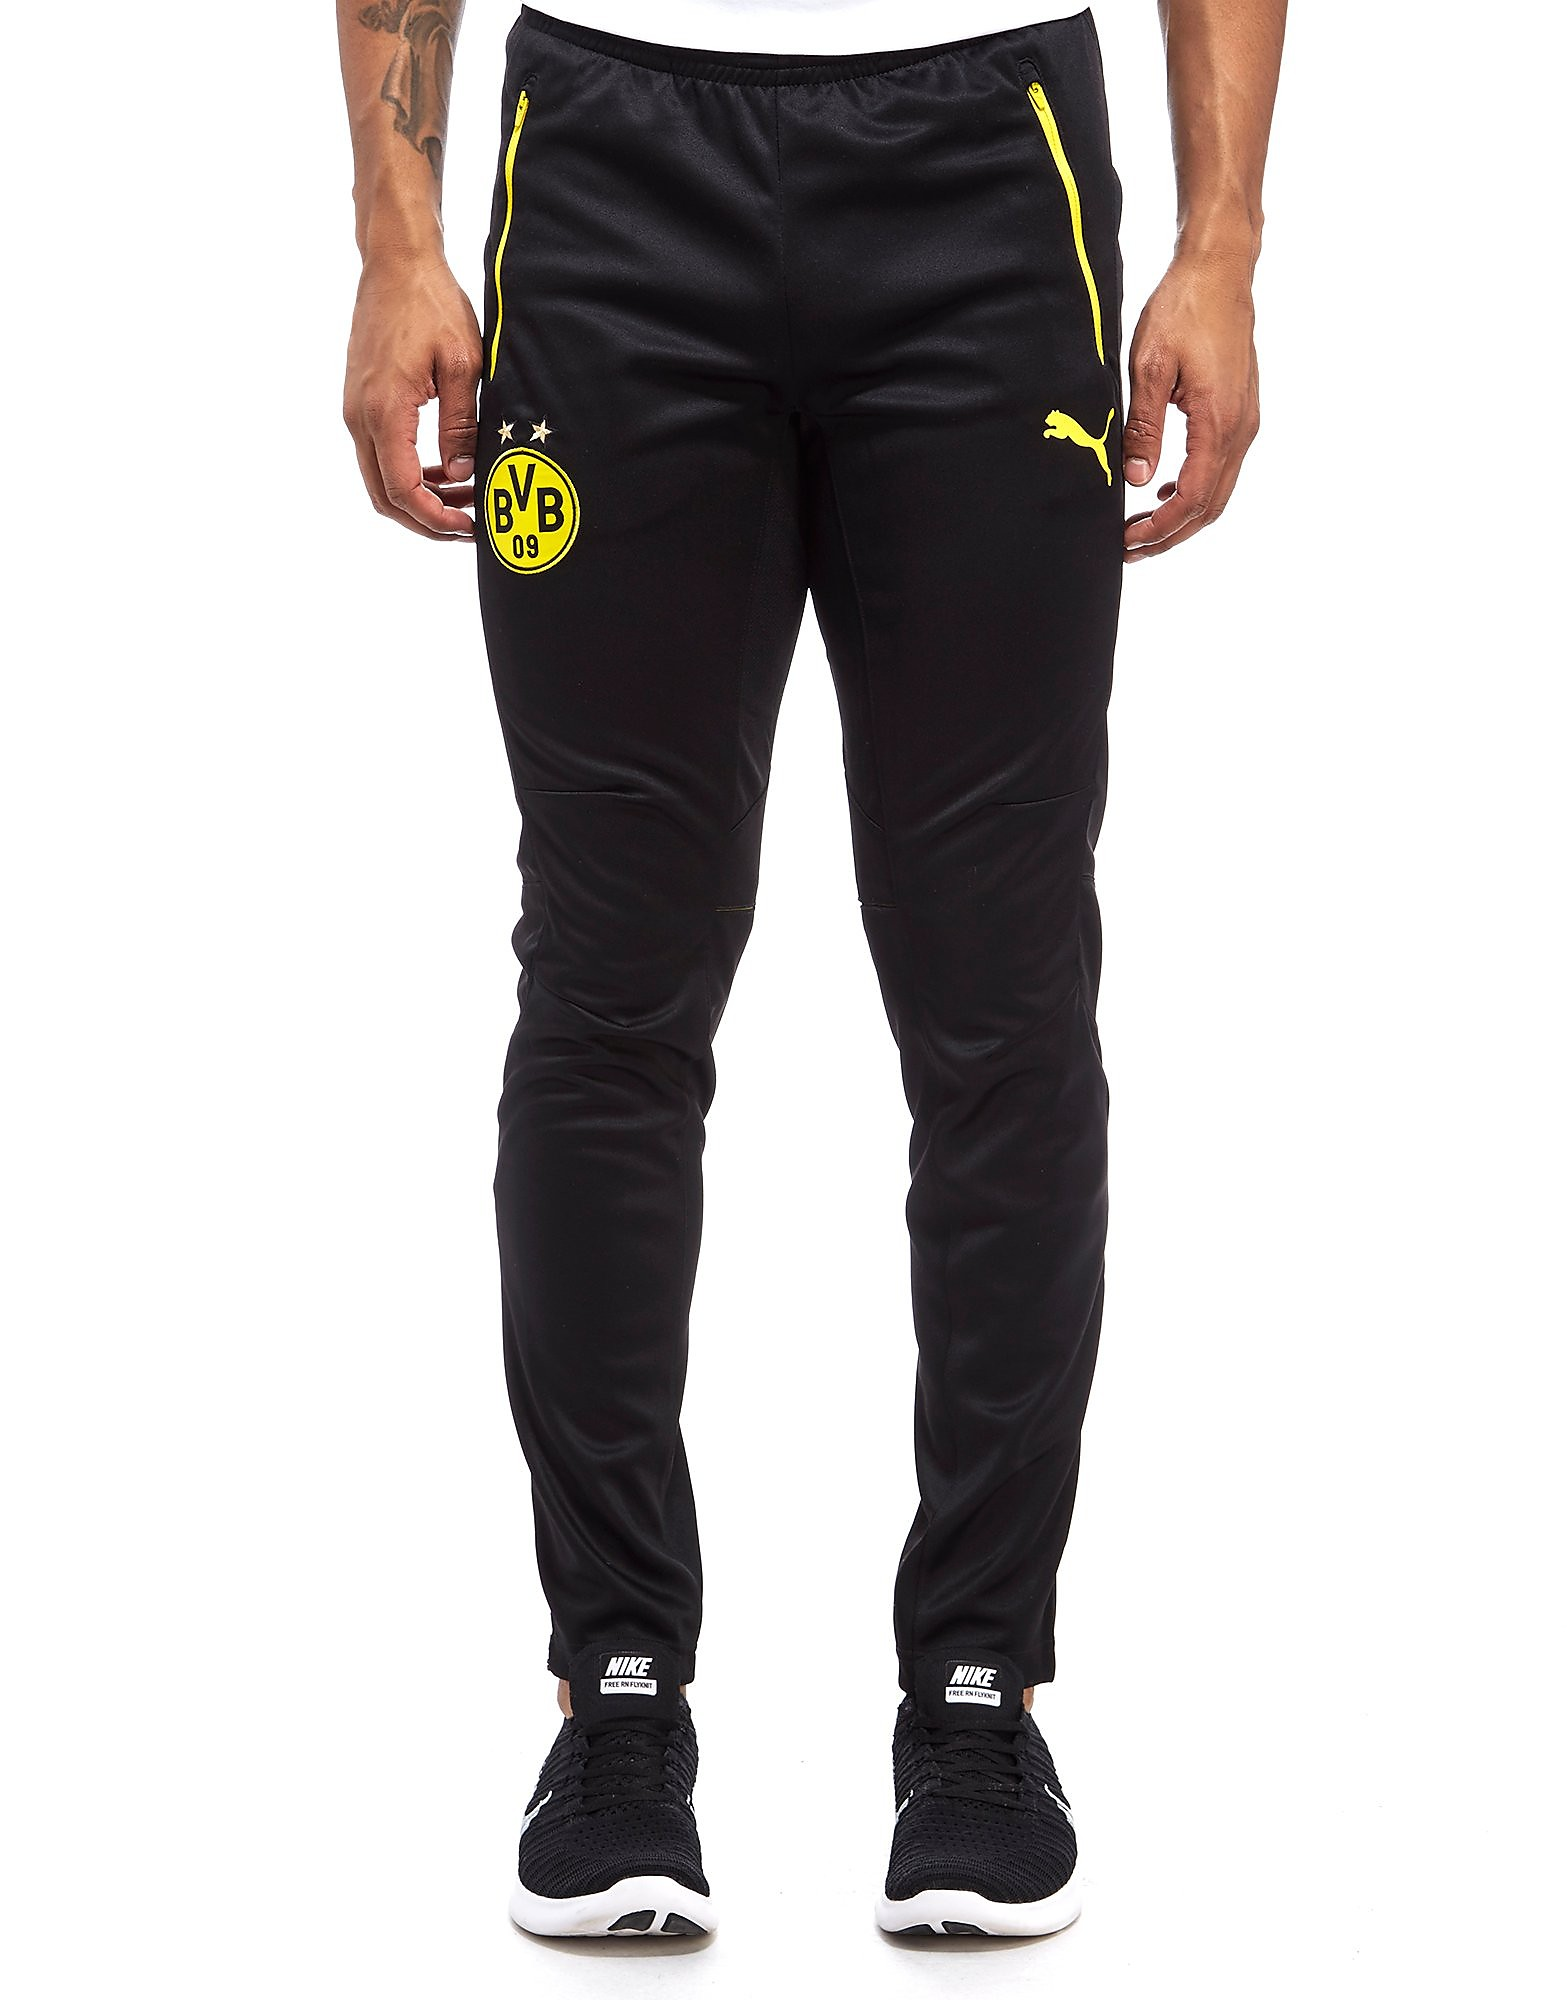 PUMA Borussia Dortmund 2017 Training Pants